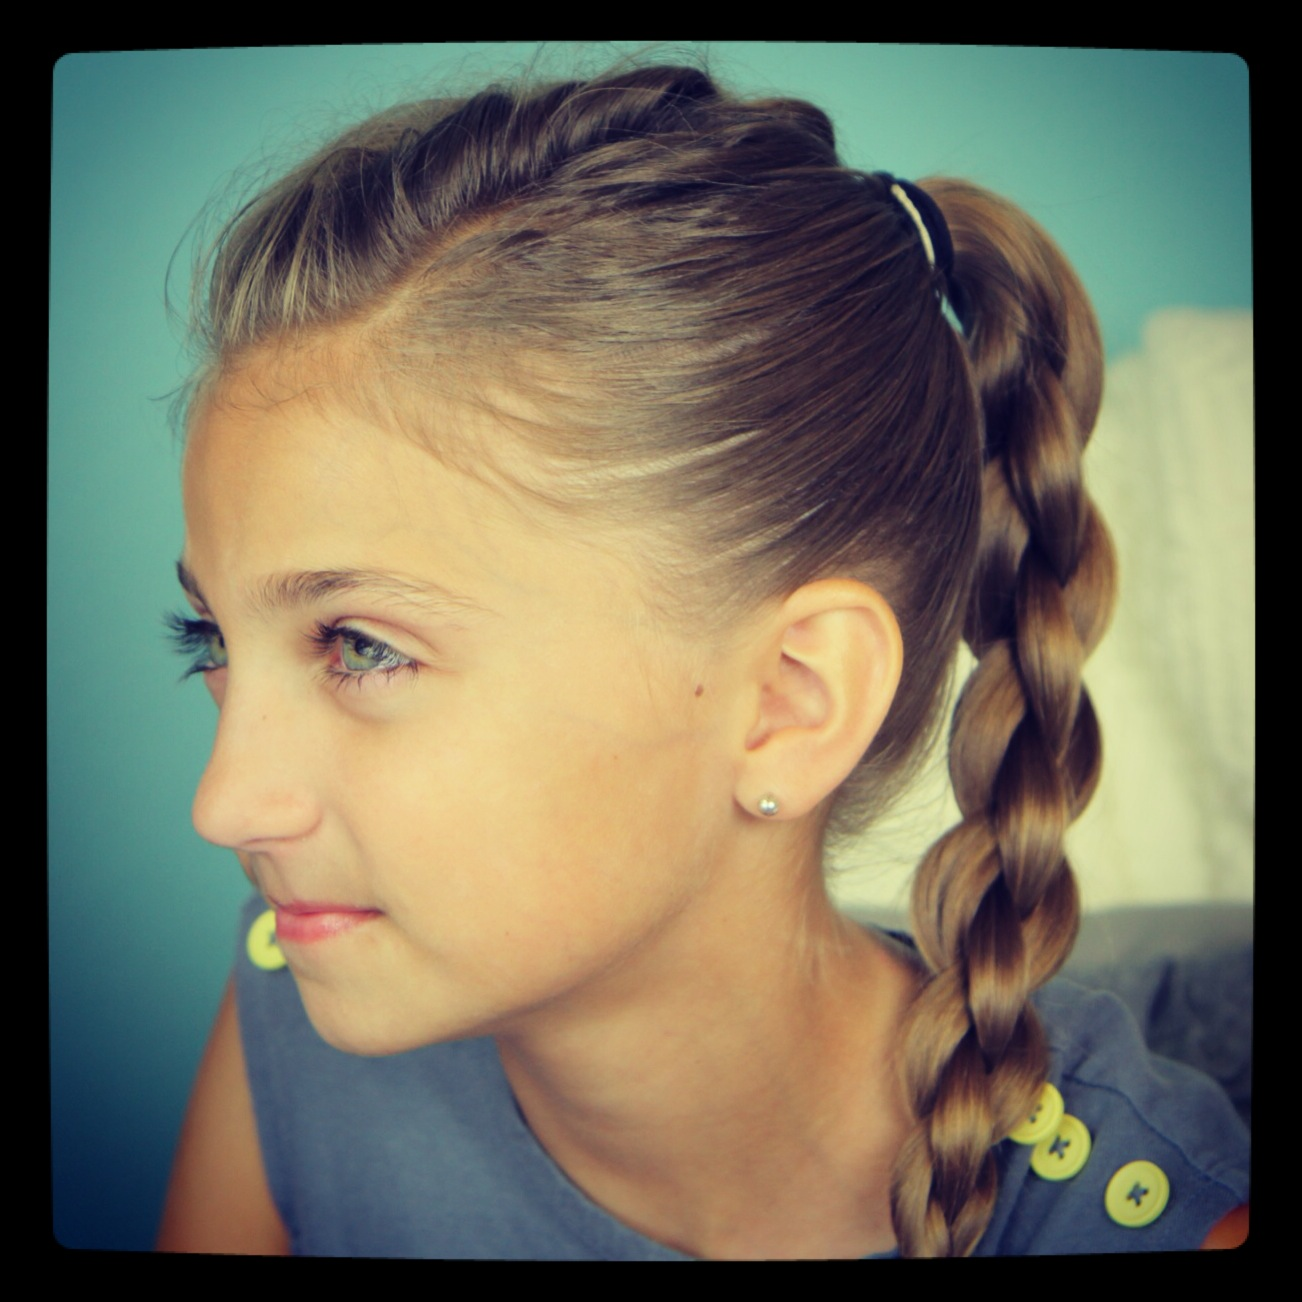 Miraculous Single Frenchback Into Round Braid Back To School Hairstyles Hairstyles For Women Draintrainus